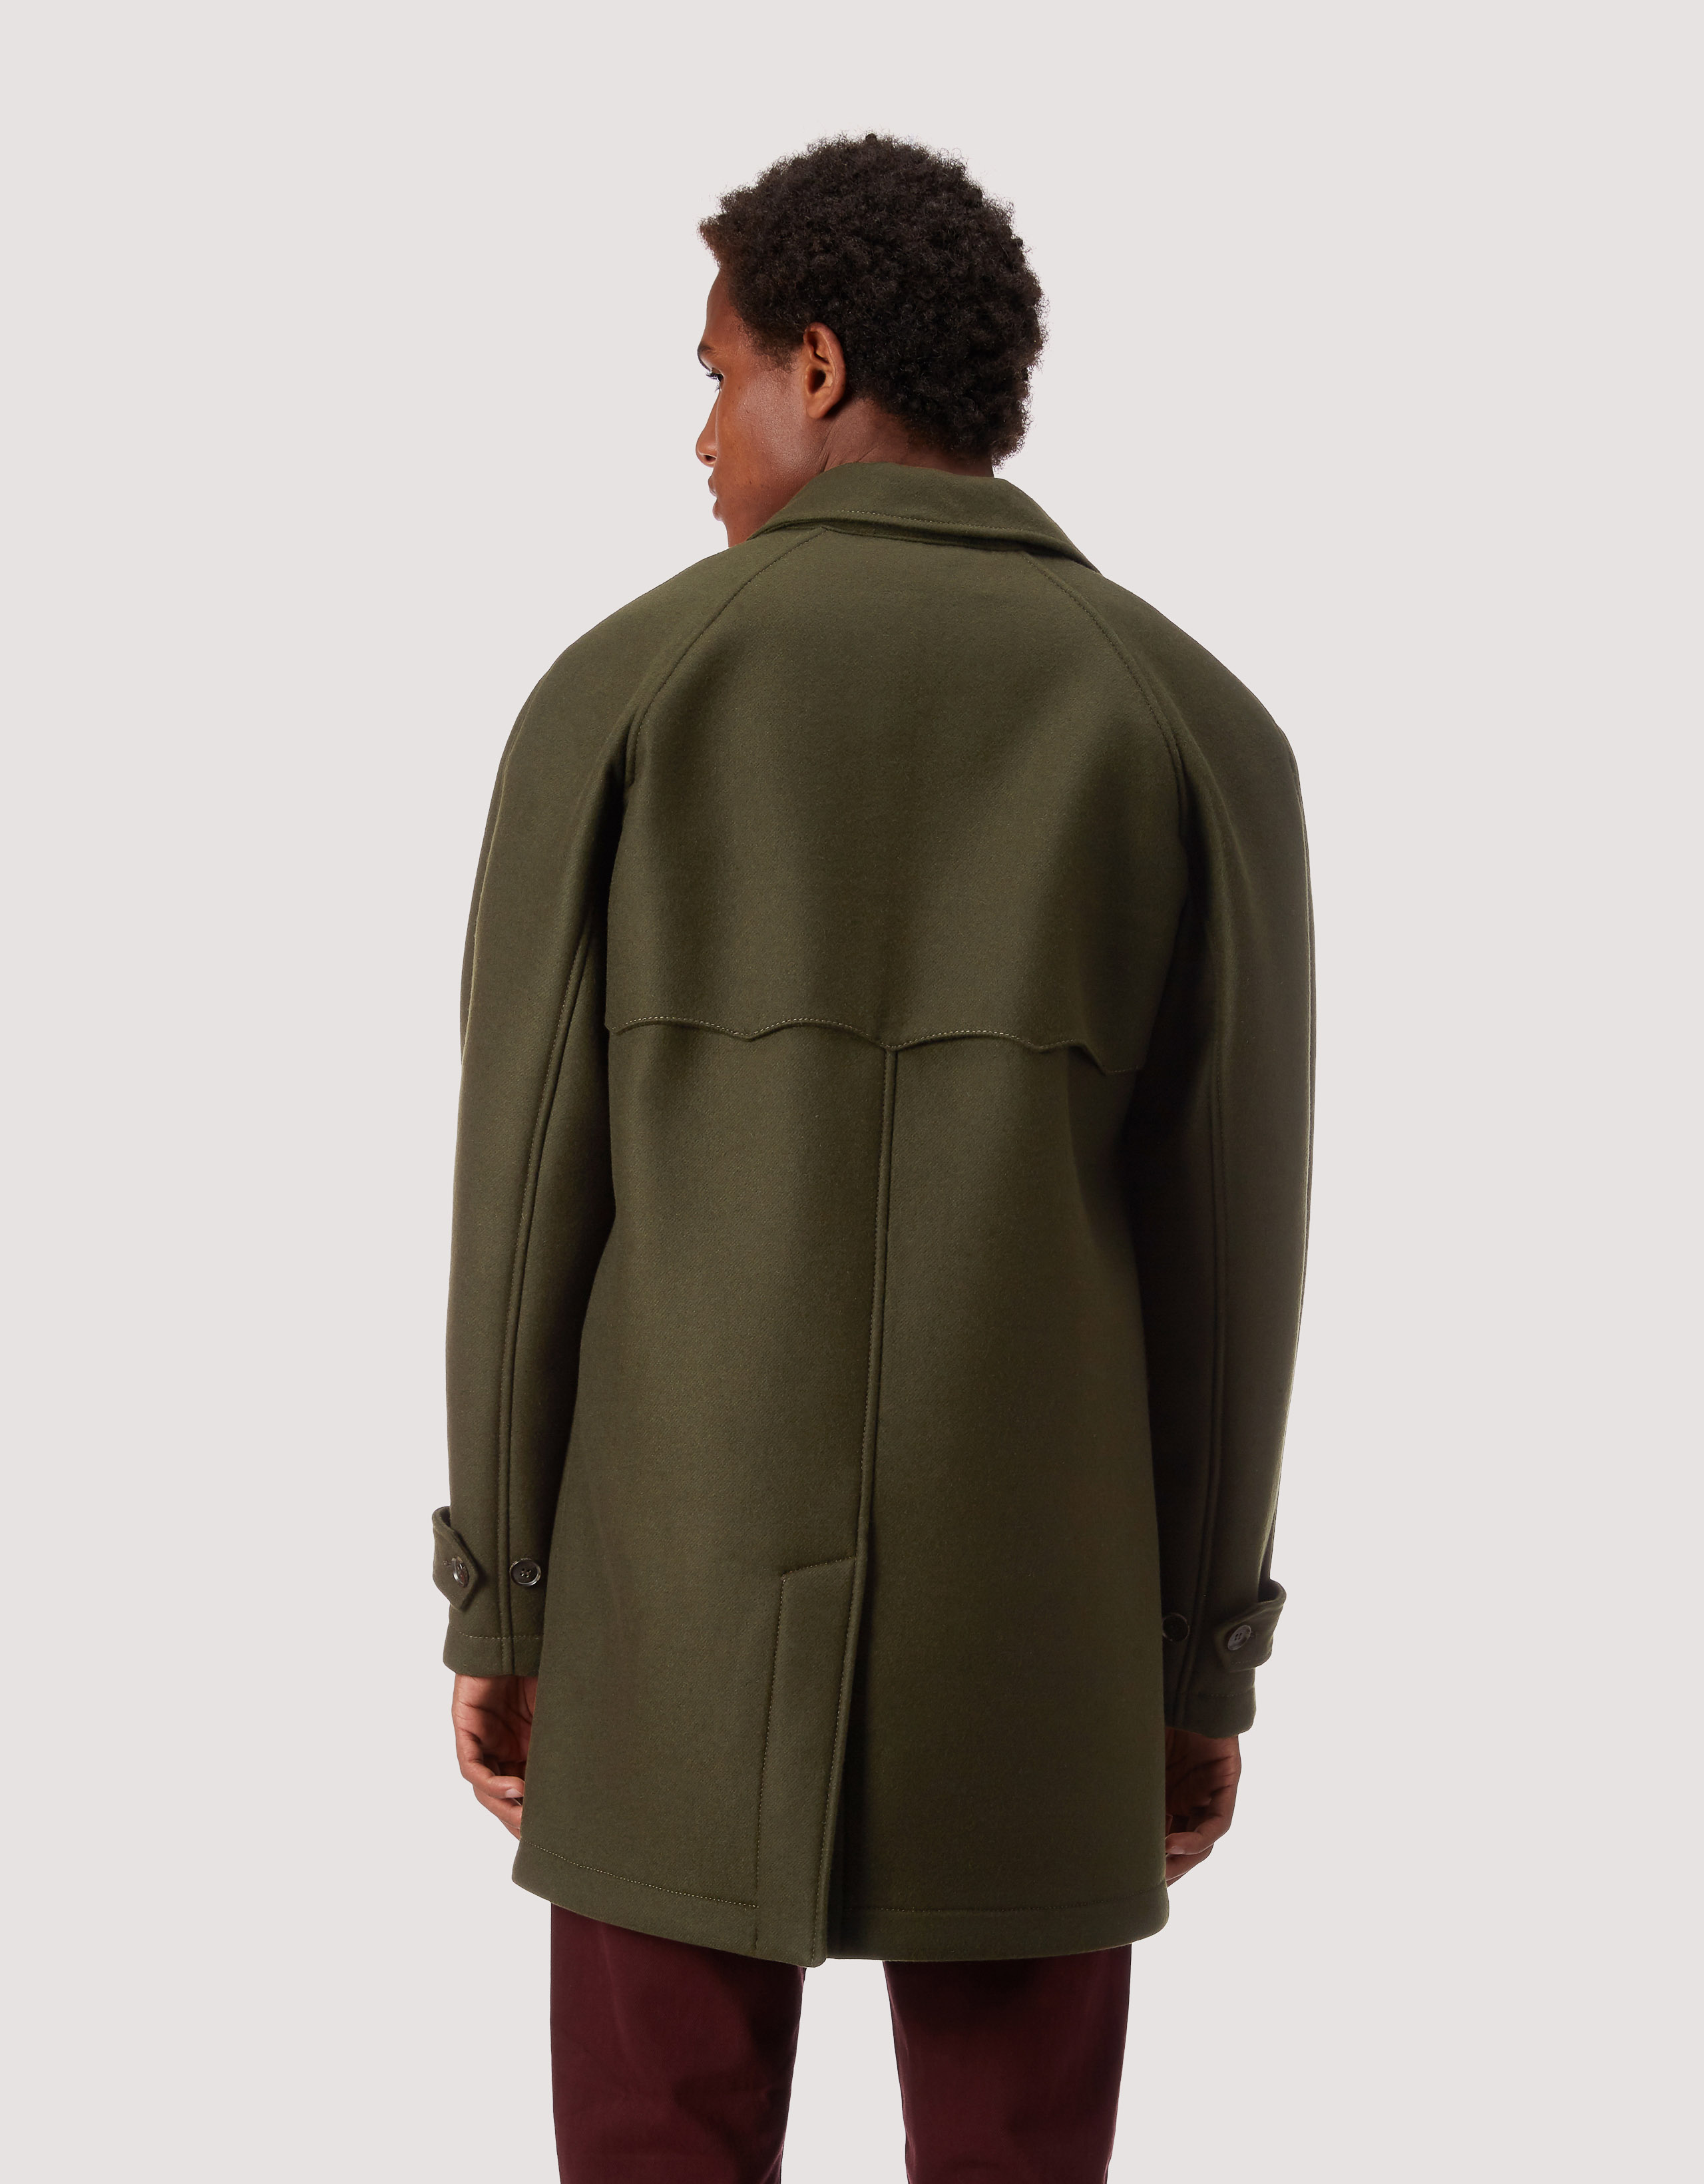 BARACUTA G10 Archive Fit Felted Neo Loden 3